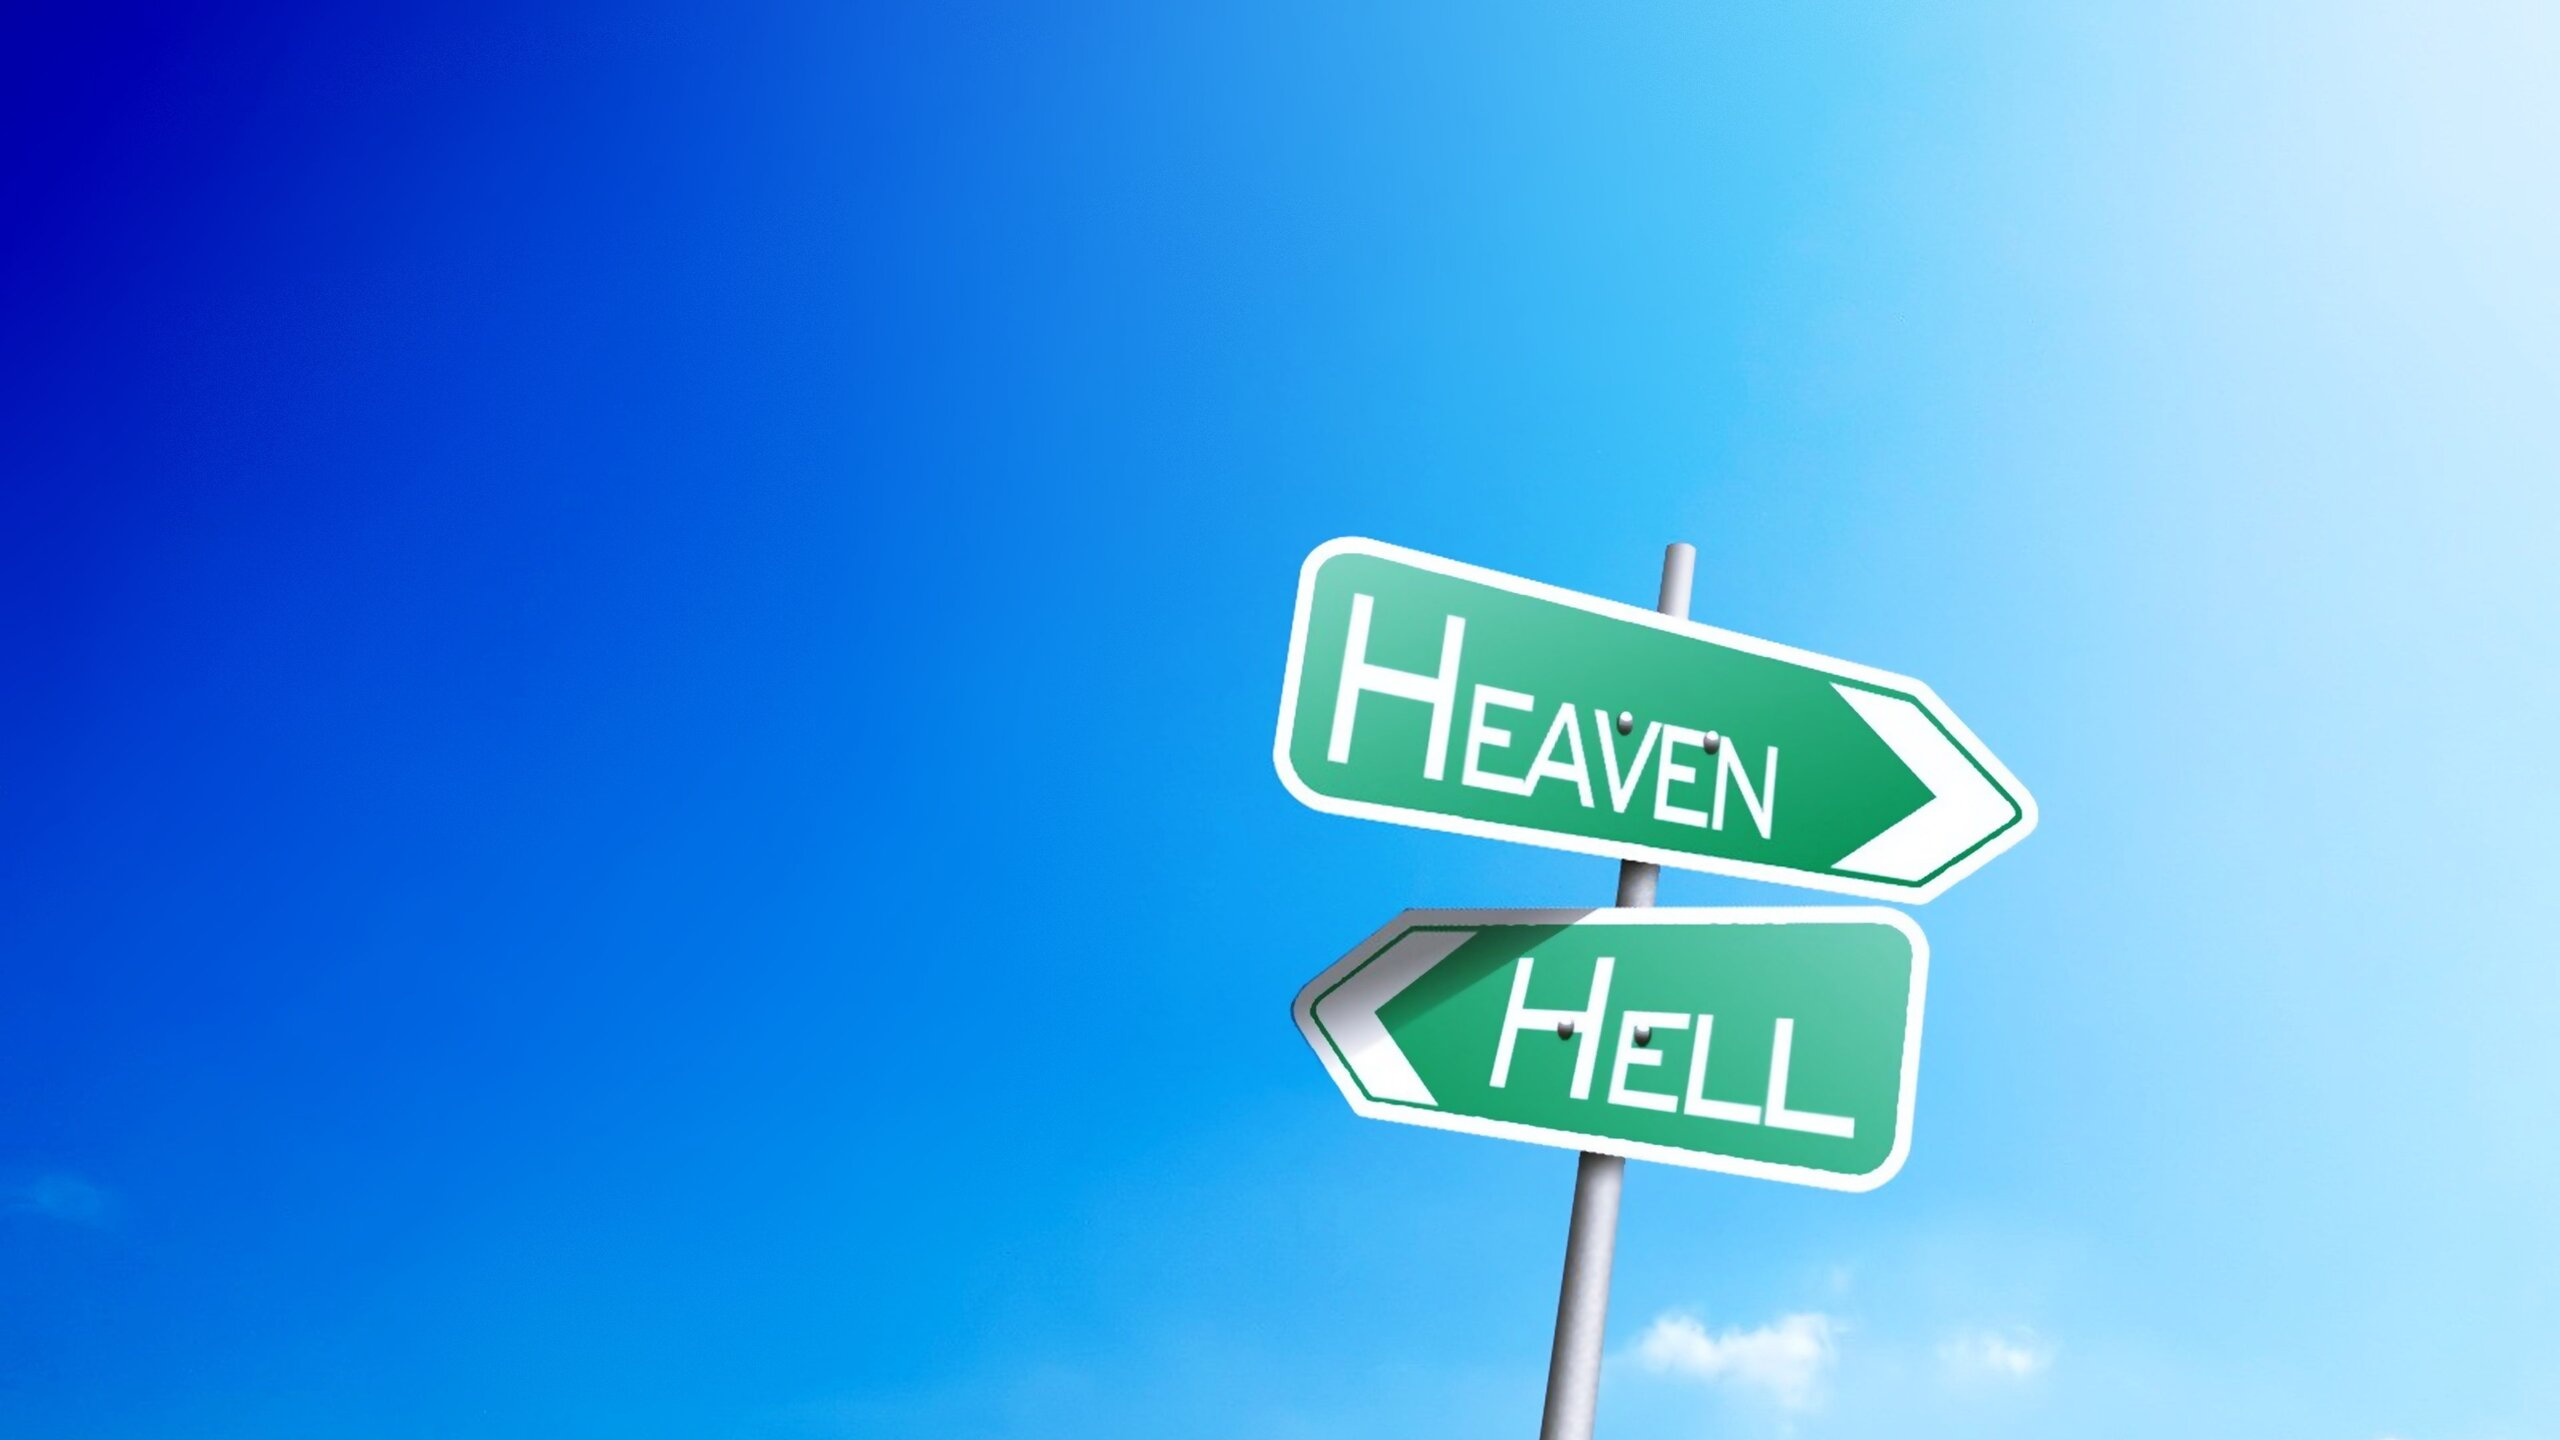 2560x1440 Heaven Or Hell Sign Board 1440P Resolution HD 4k Wallpapers,  Images, Backgrounds, Photos and Pictures